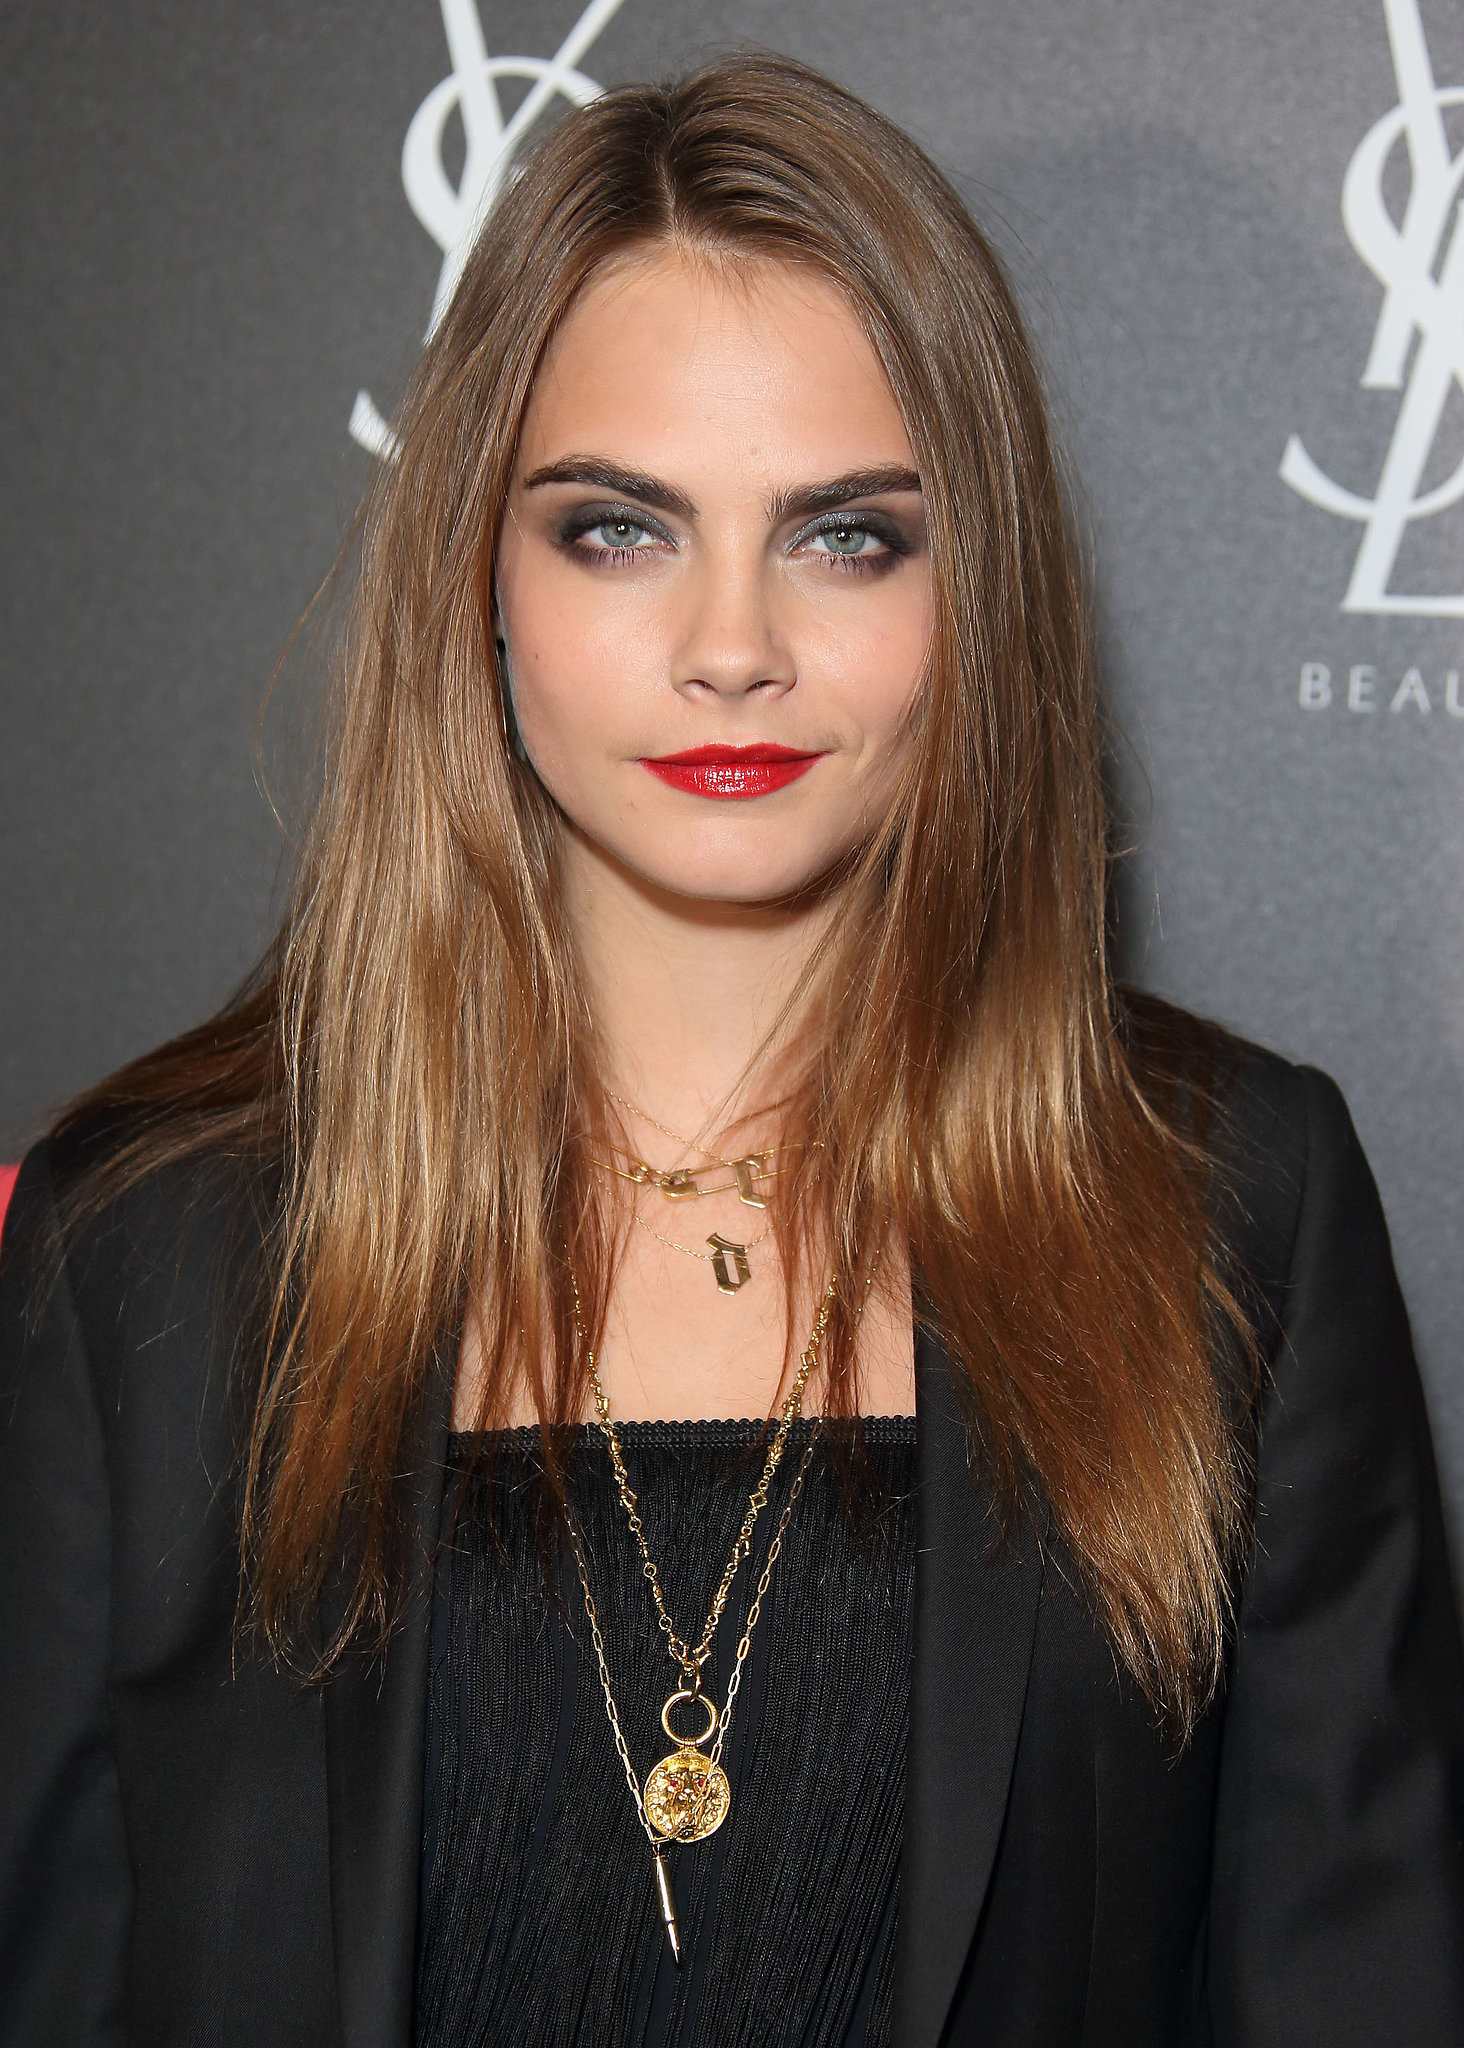 Cara Delevingne Hair Colors for 2016 Winter